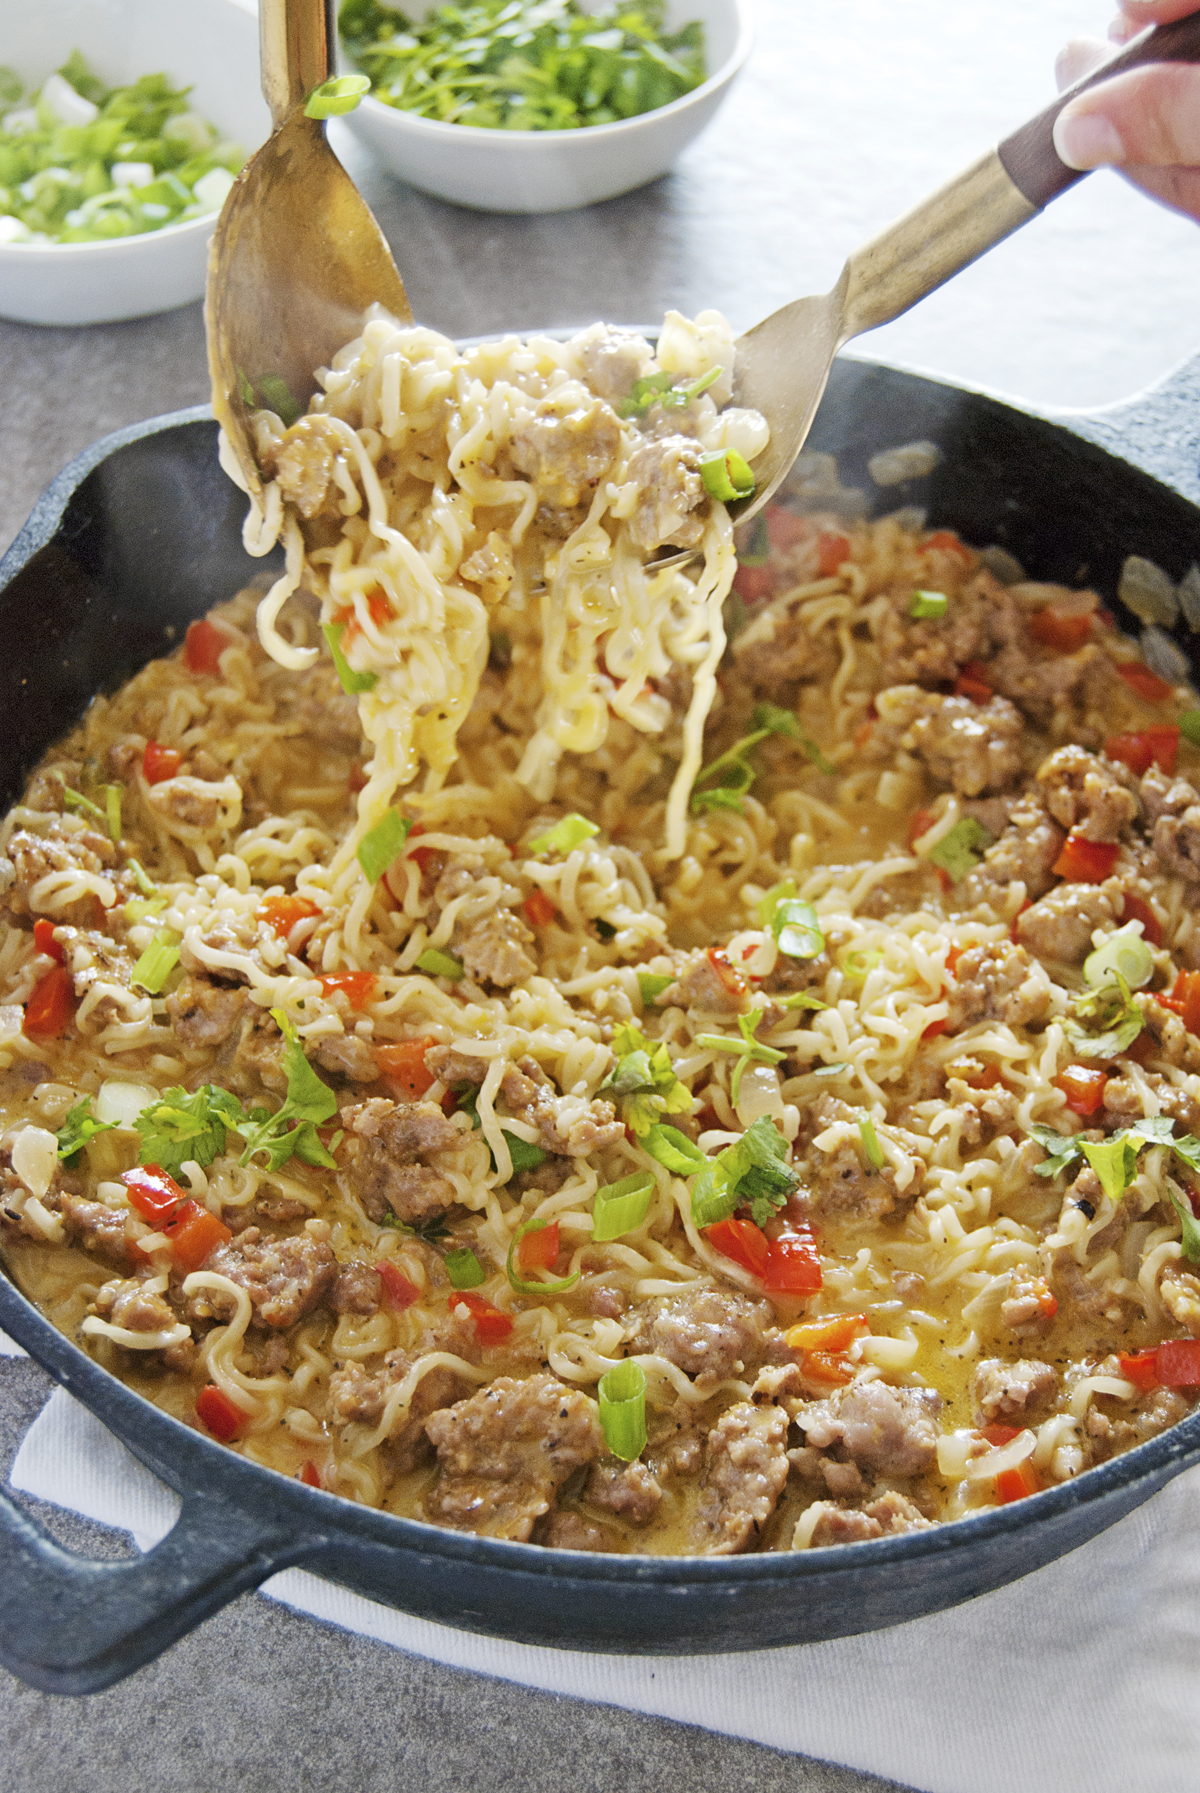 This Mexican-style cheesy ramen dish features spicy pork paired with ramen noodles, cheese, and bell peppers.